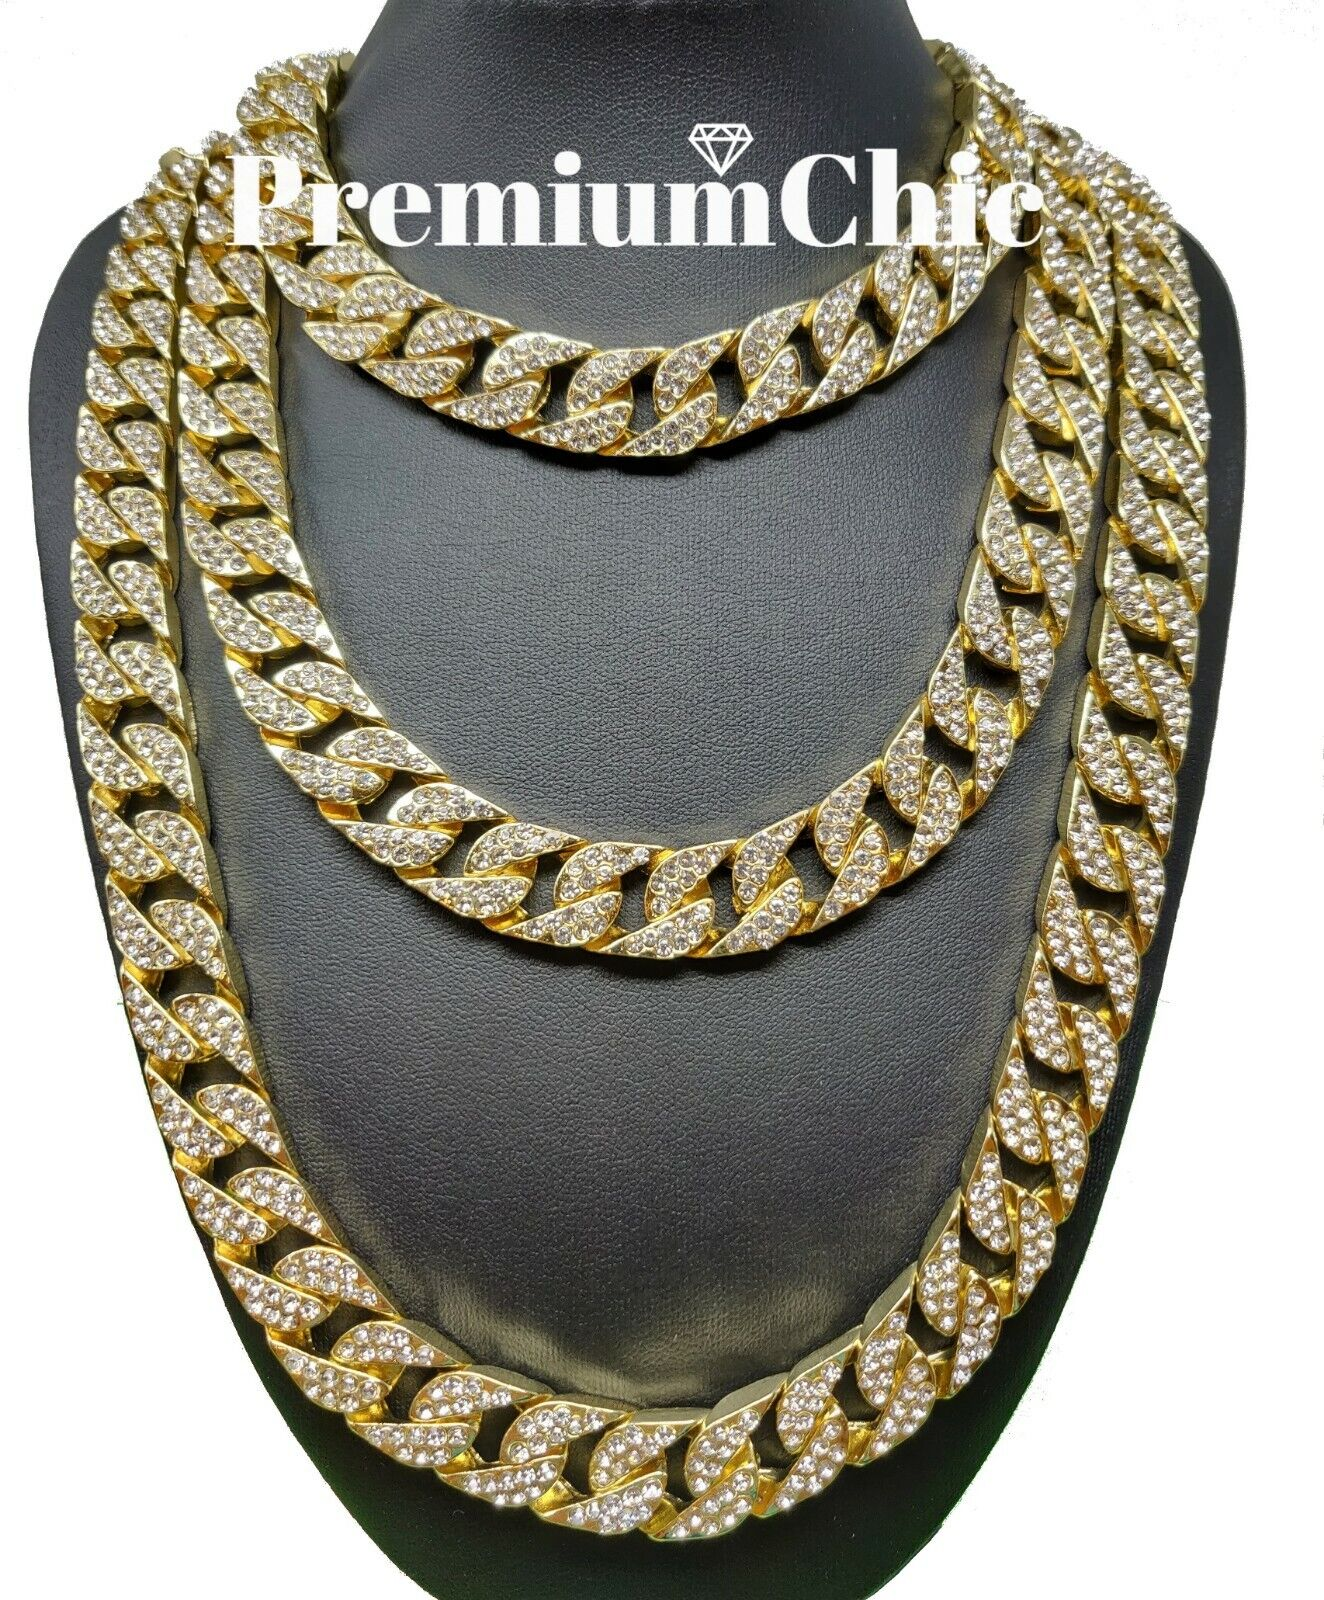 Jewellery - ICED Miami Cuban Choker Link Chain Men's Hip Hop Necklace Gold / Silver Plated